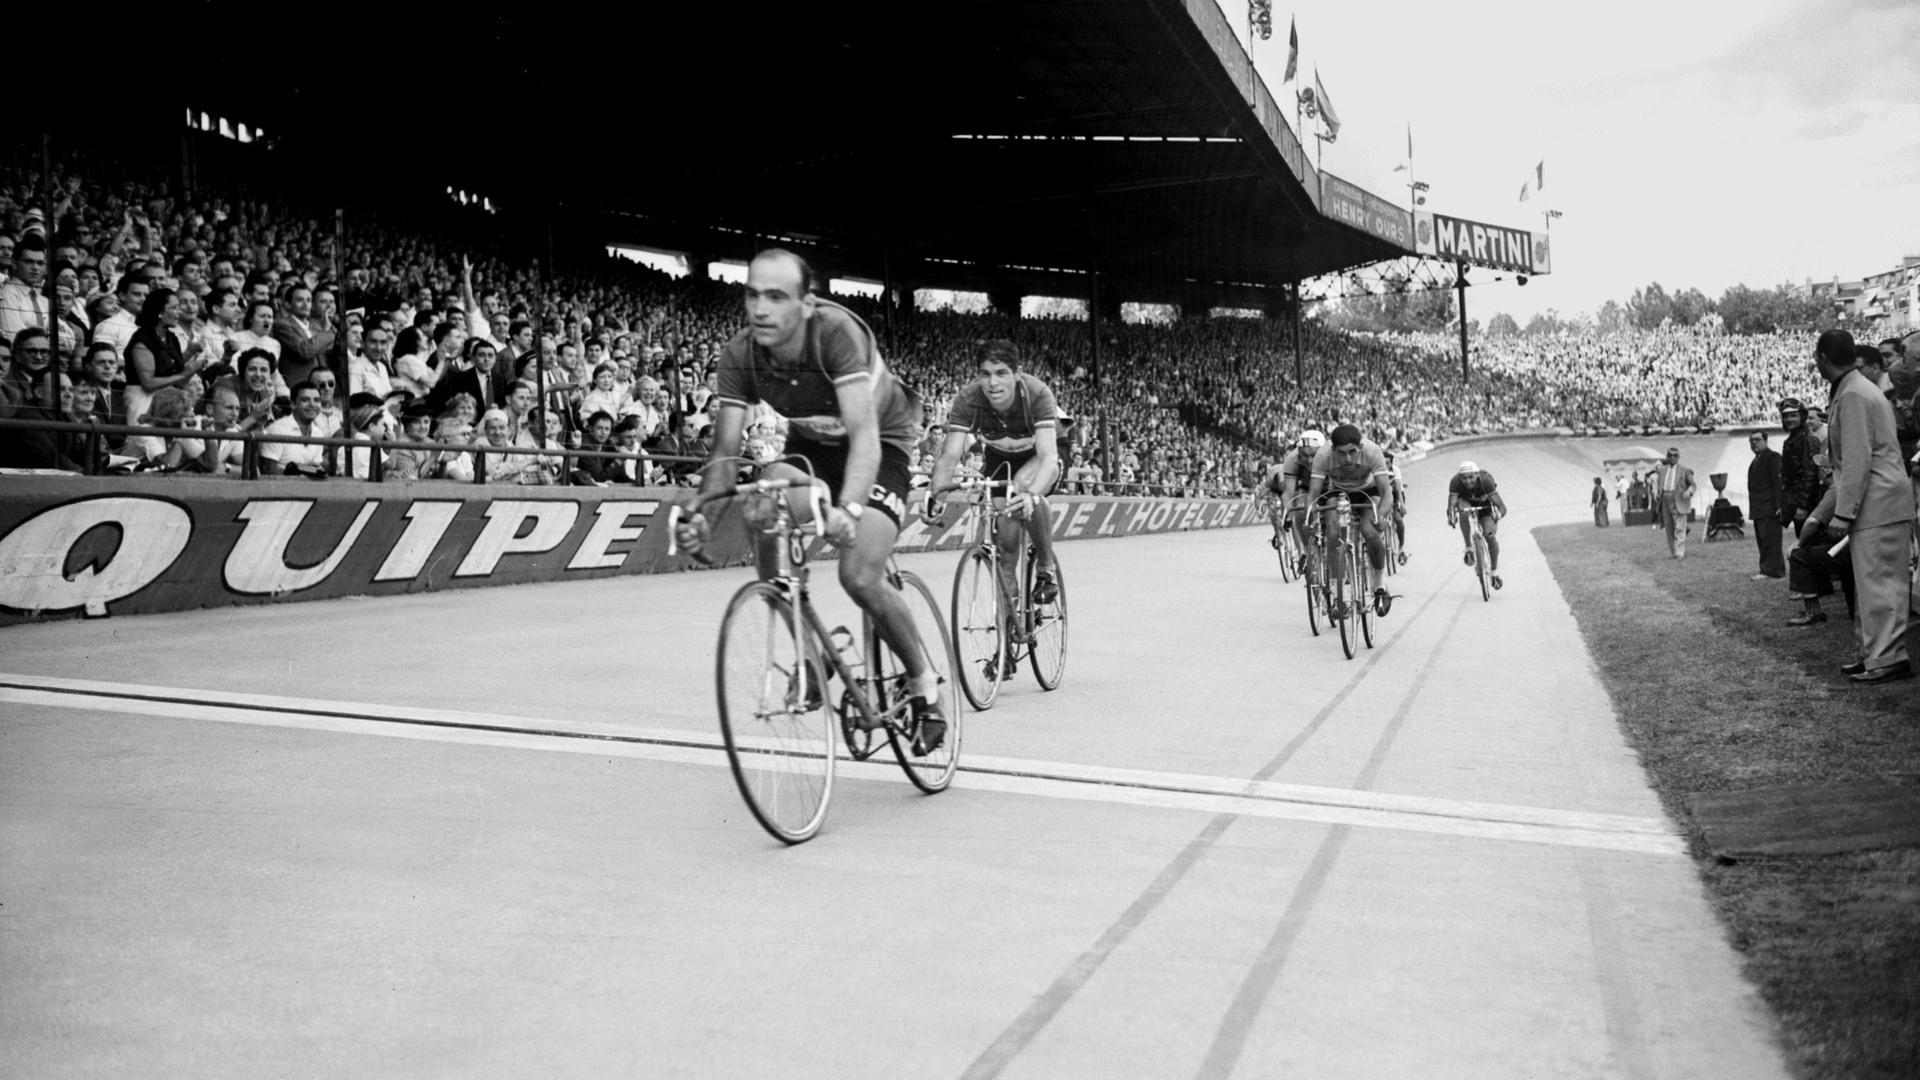 Fiorenzo Magni vence etapa da Volta da Frana em 1953. Polmico ciclista italiano morreu no dia 19/10/2012